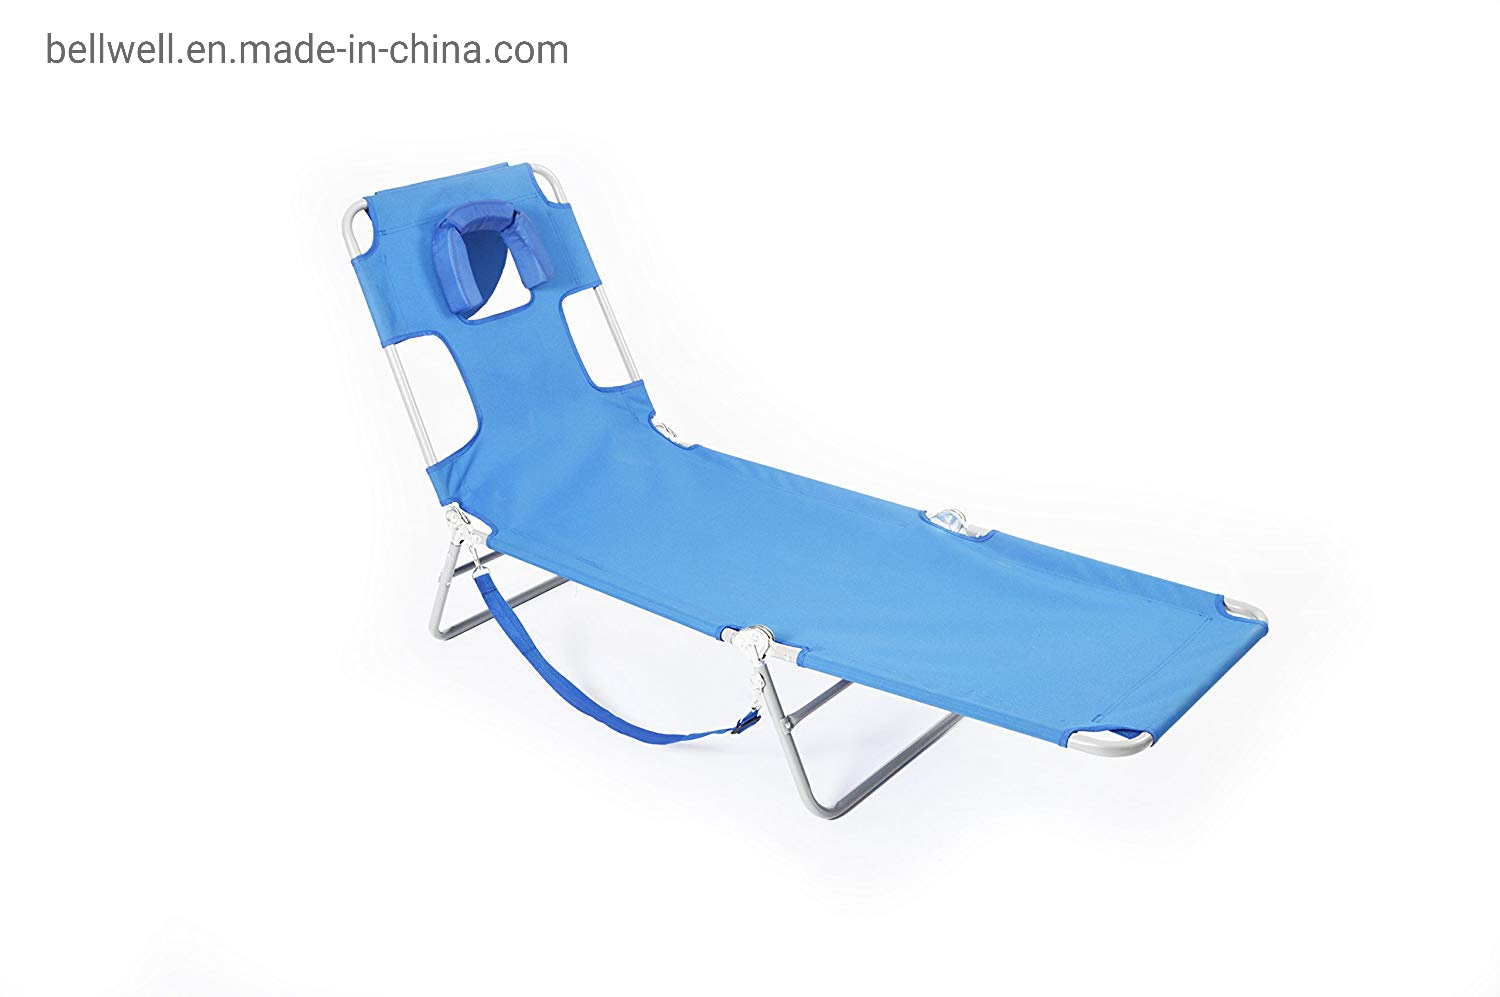 Fabulous Hot Item Adjustable Chaise Lounge Chair Recliner W Sunbathing Tanning Face Down Hole For Beach Outdoor Pool Patio Deck Gmtry Best Dining Table And Chair Ideas Images Gmtryco